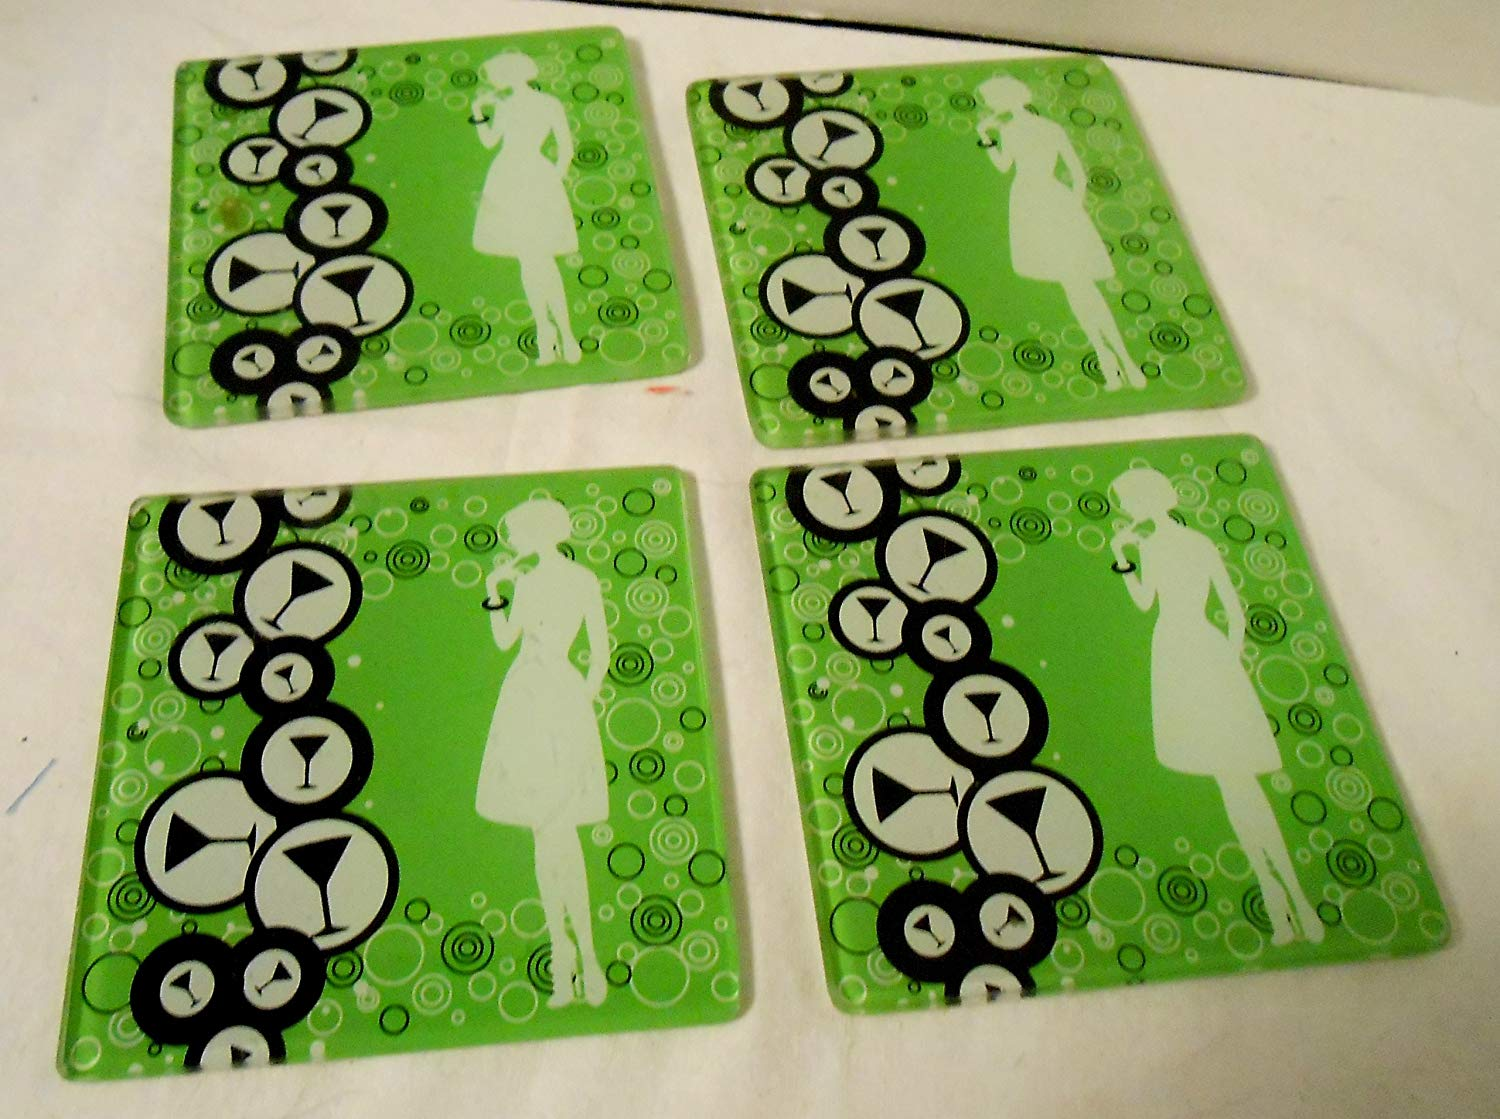 eeb7248b67b Get Quotations · Set of 4 Green Glass Coasters With Martini Glasses and  Ladies Silhouette